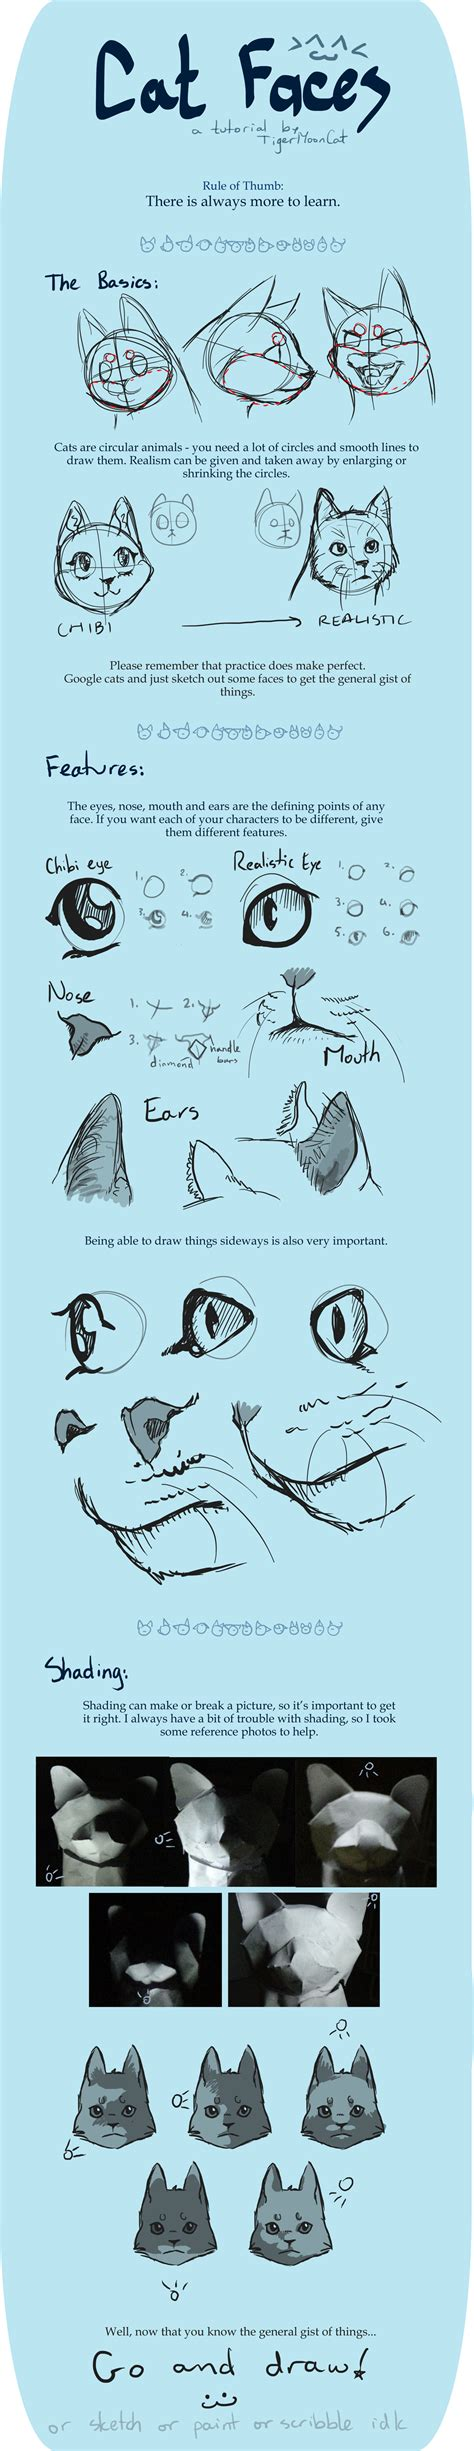 cat tutorial cat faces tutorial by tigermooncat on deviantart